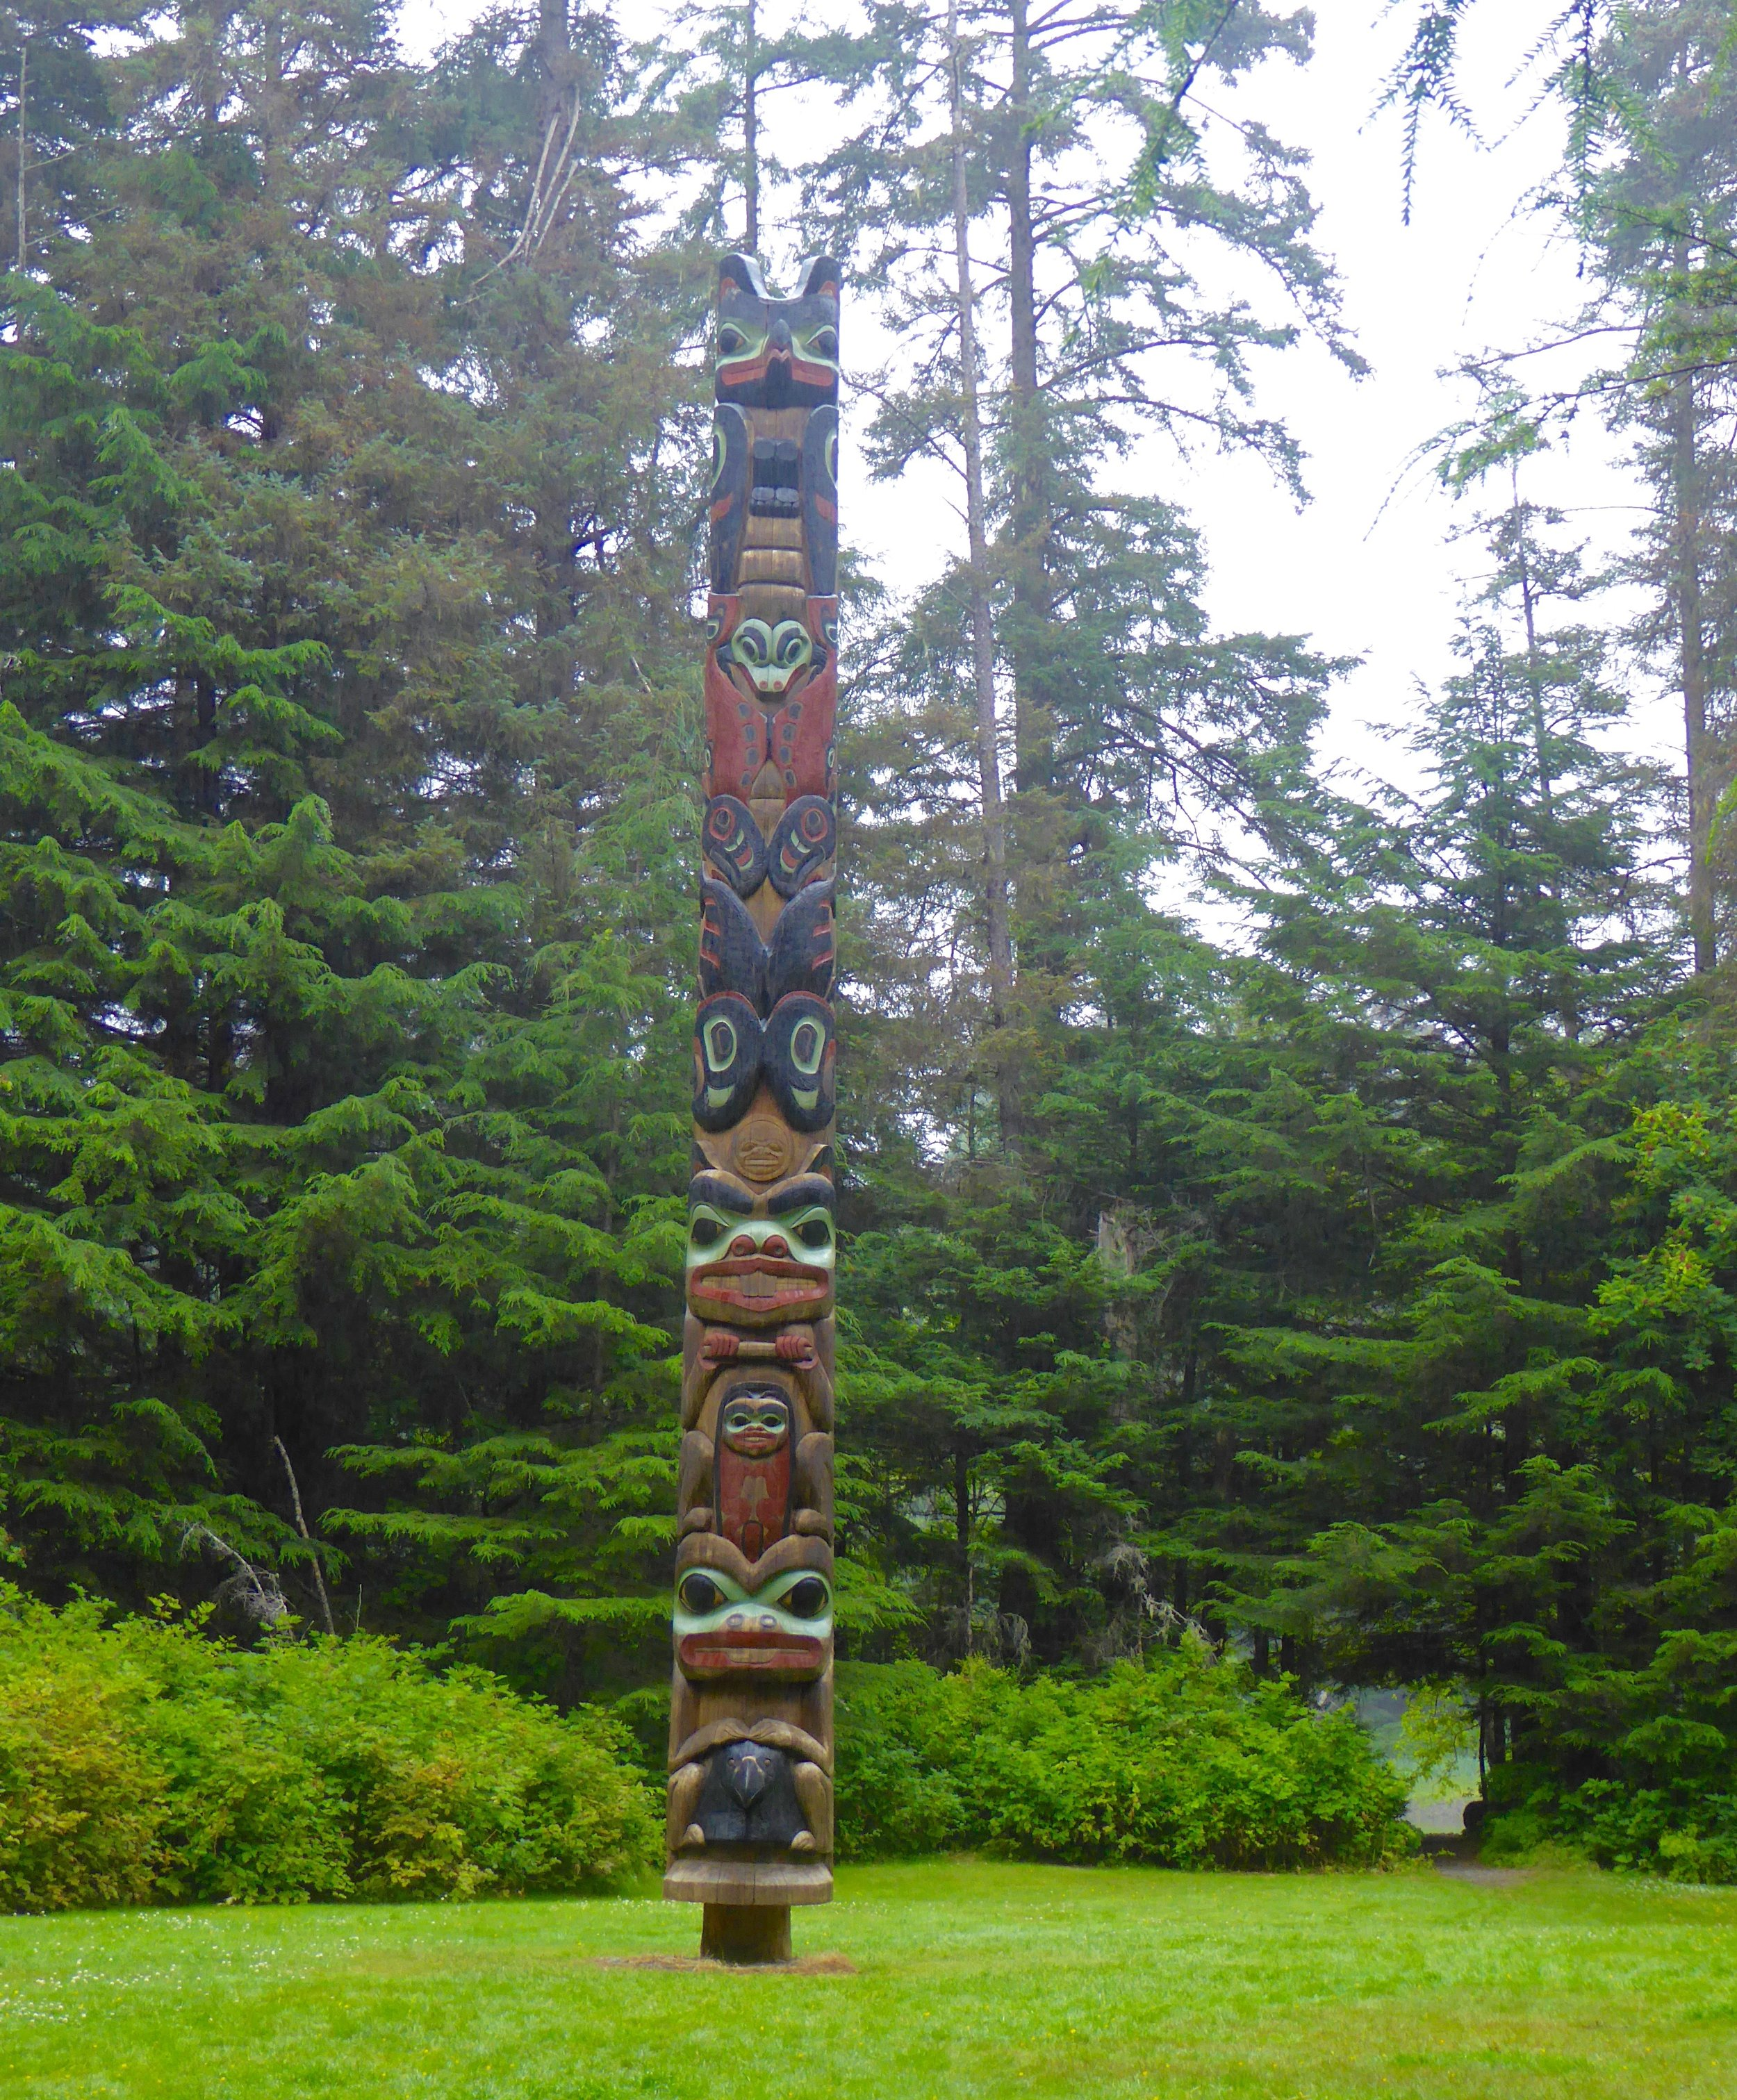 Many totem poles were displayed thru out the forest.